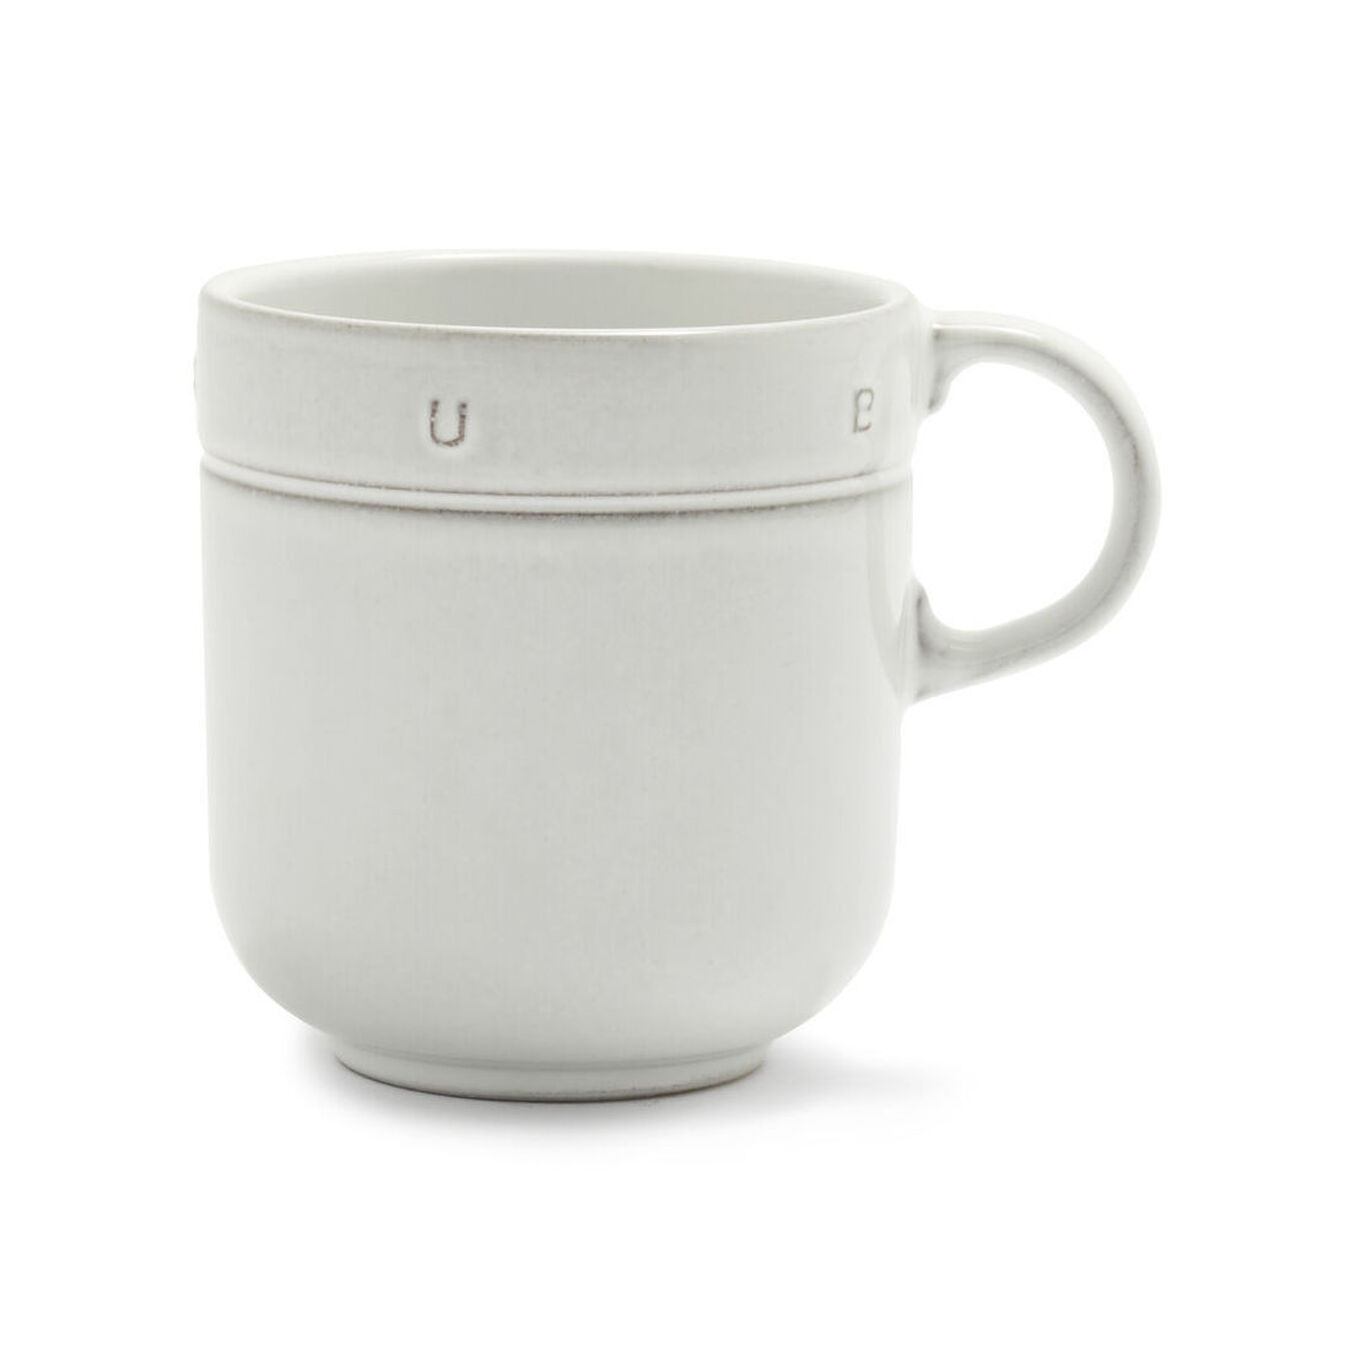 0.5 qt, Ceramic, Mug, off-white,,large 1